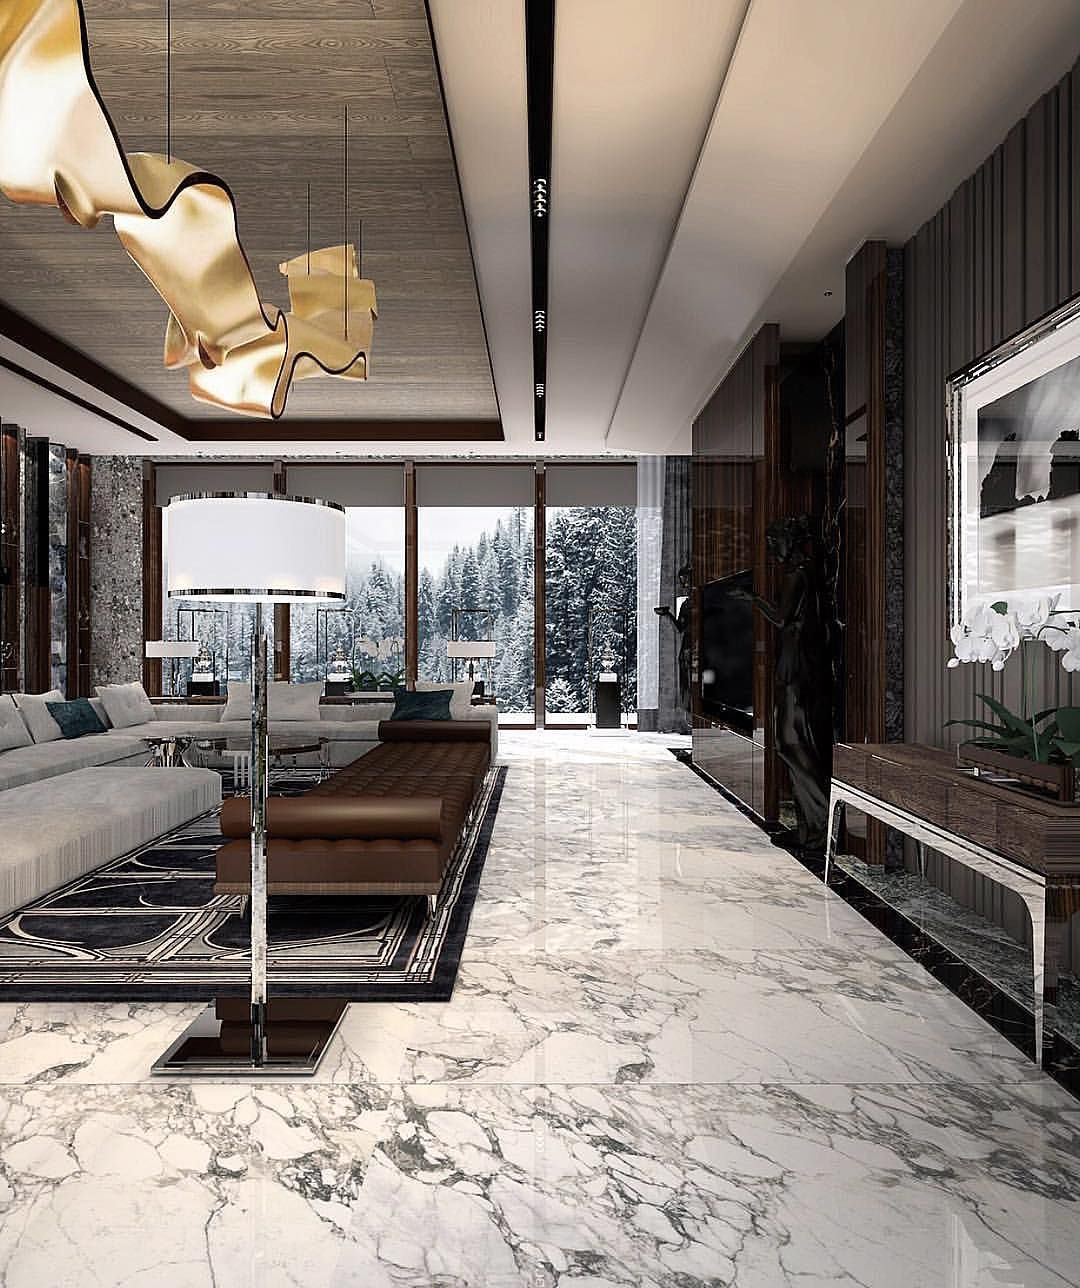 Home Decor 2012 Luxury Homes Interior Decoration Living: Cheap Industrial Decor - SalePrice:22$ In 2020